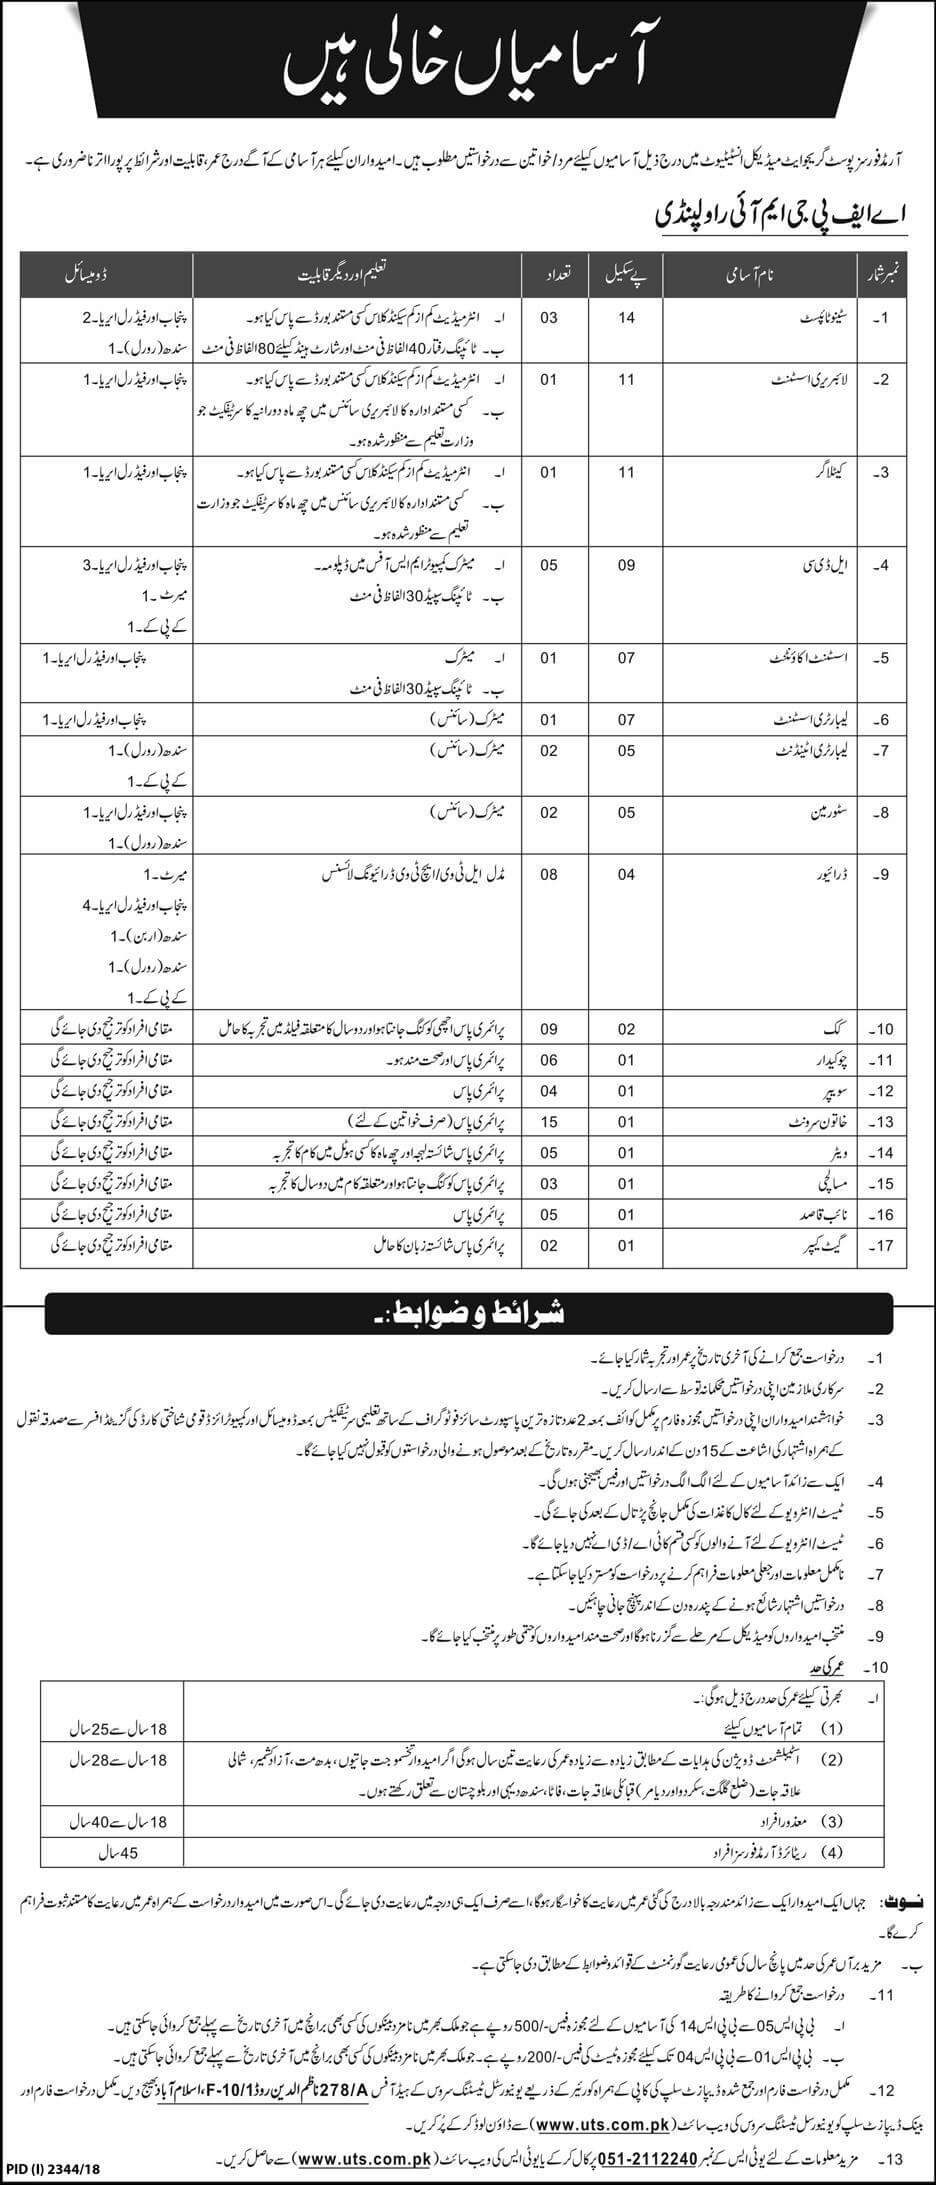 Armed Forces Post Graduate Medical Institute Jobs 2018 Government Pakistan-thumbnail